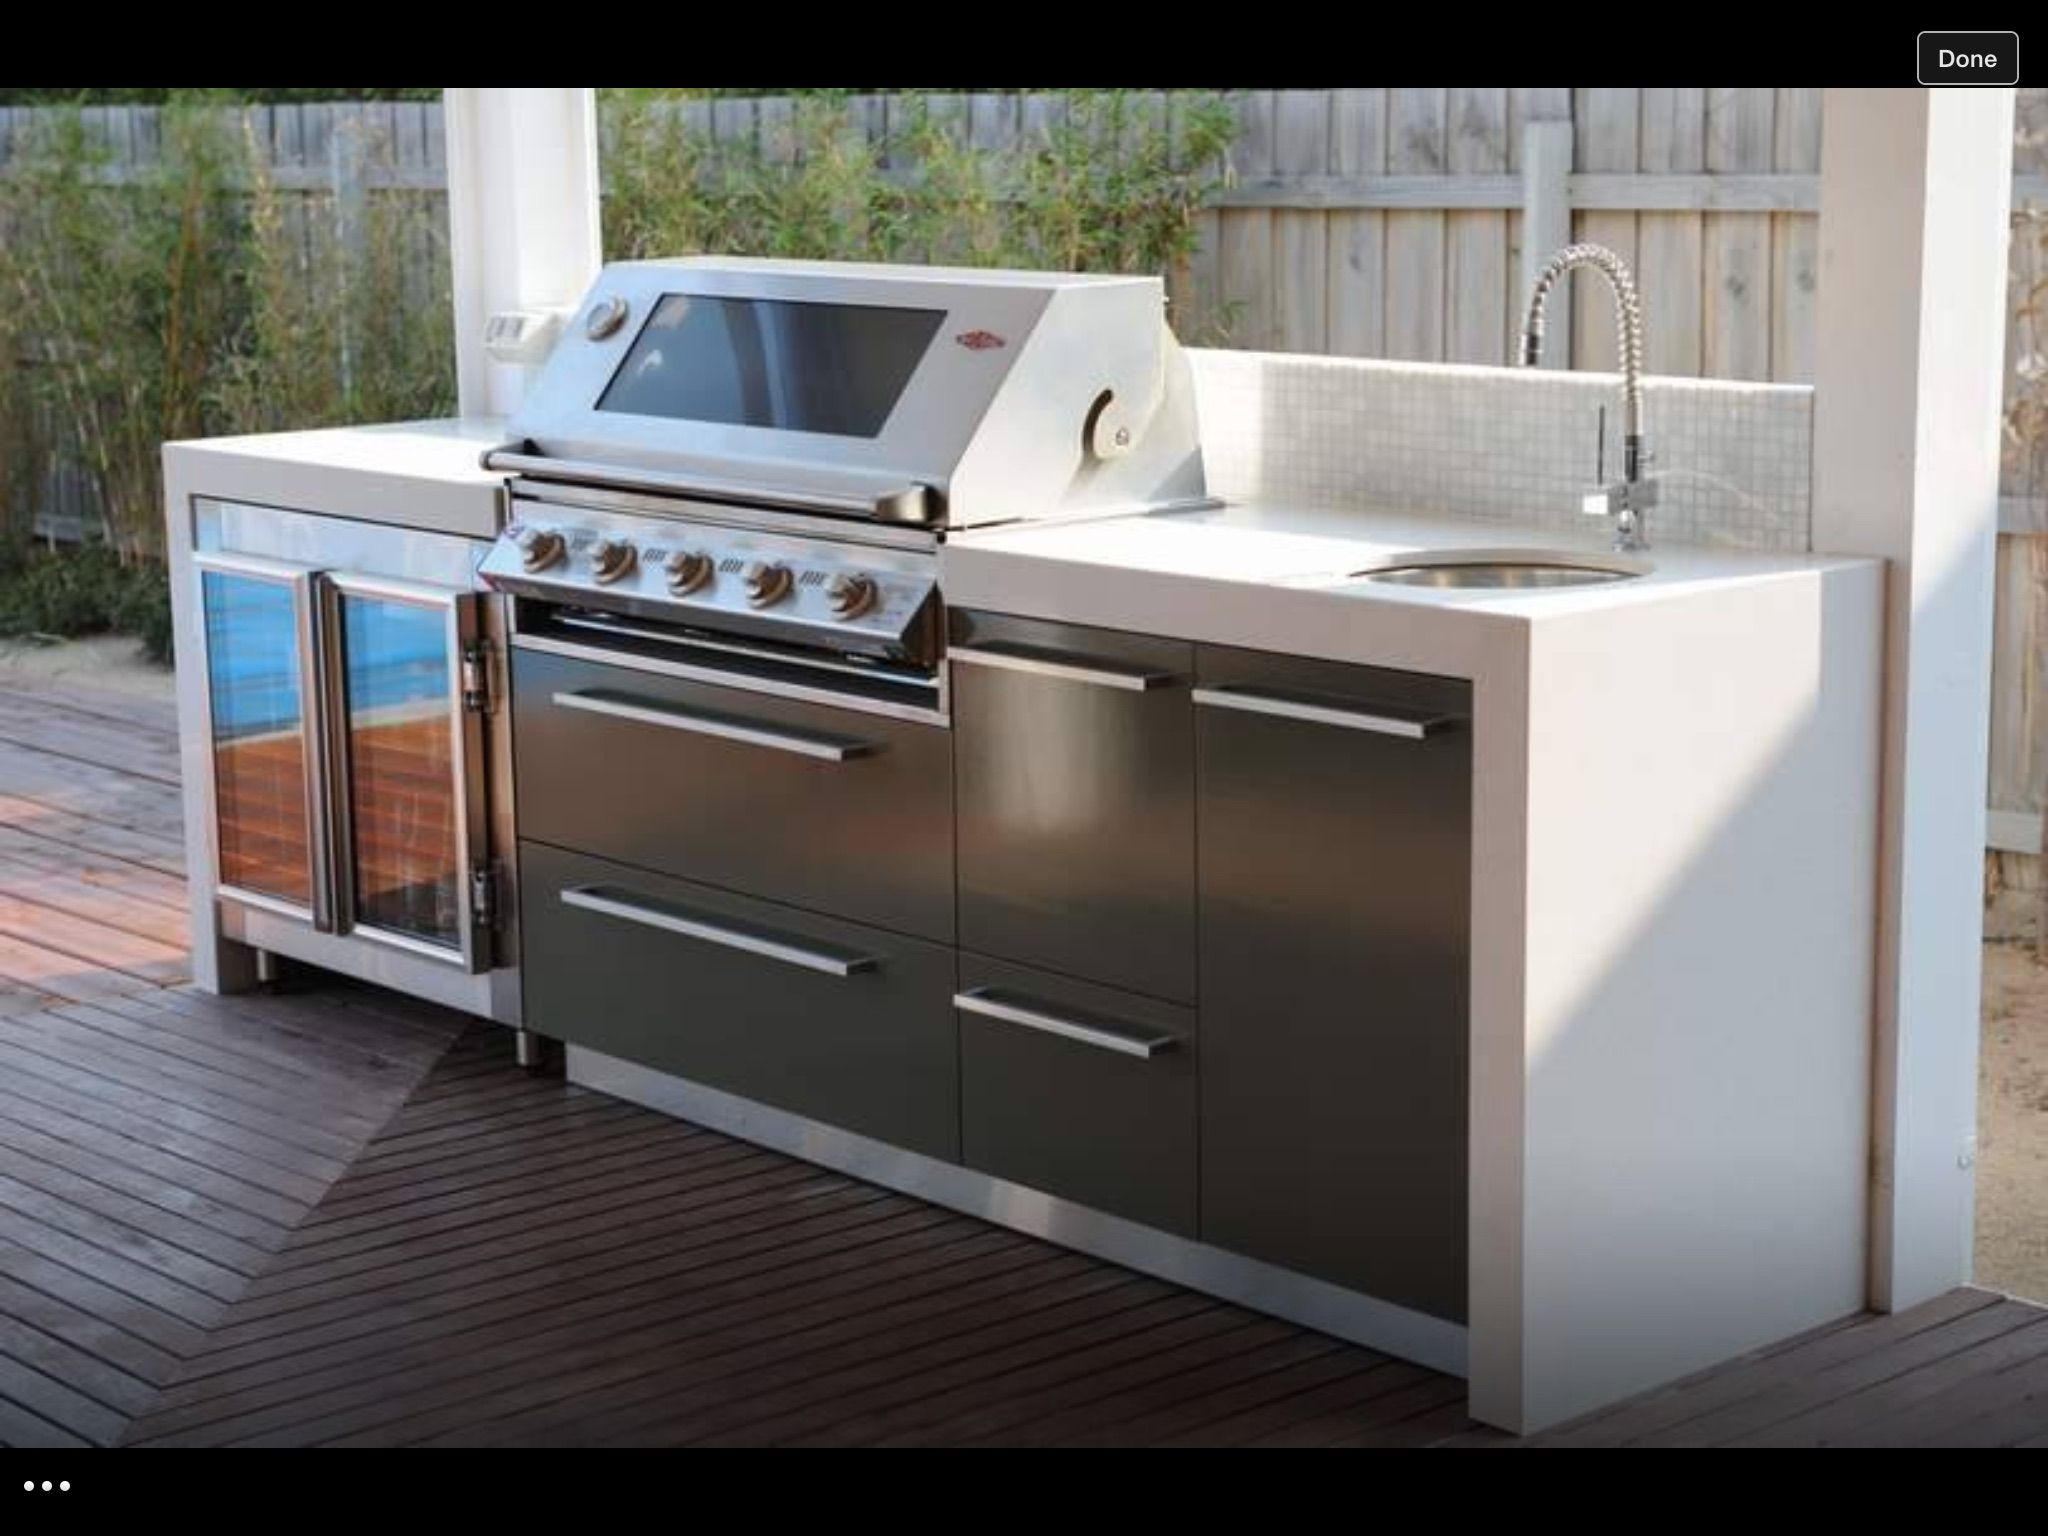 Melbourne Outdoor Kitchen Concepts Are An Elished Based Company Specialising In The Design And Manufacture Of Custom Kitchens